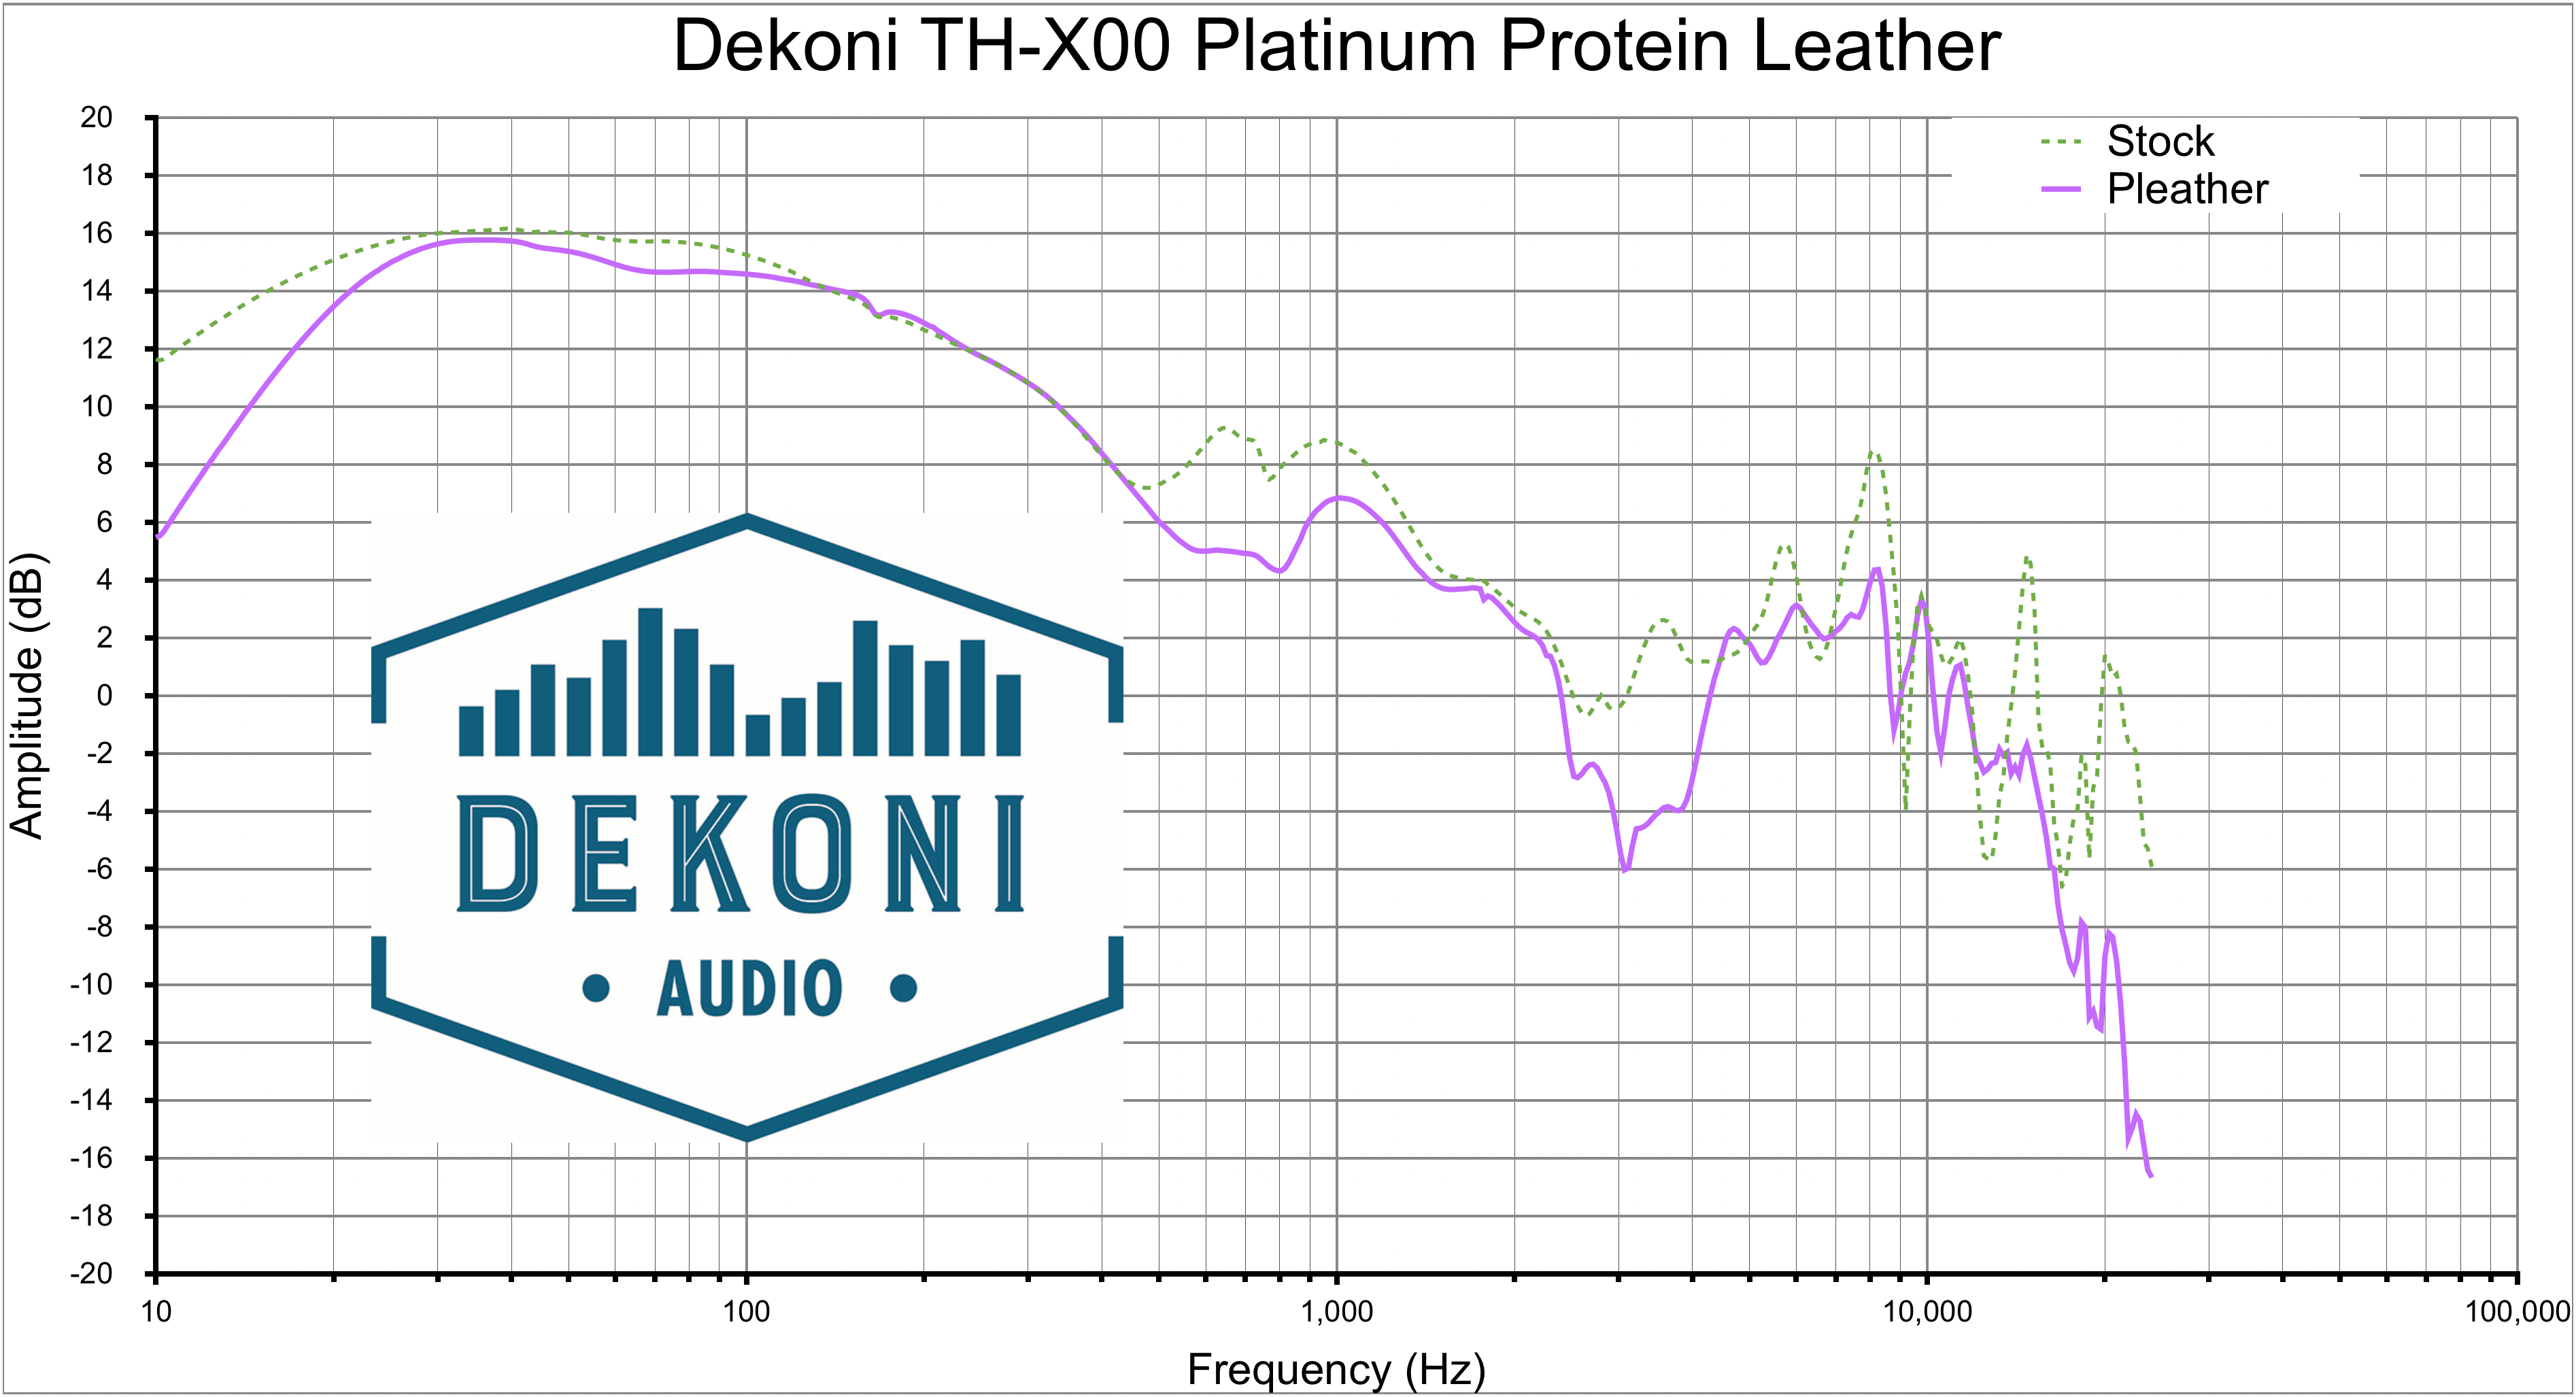 Dekoni TH-X00 PL